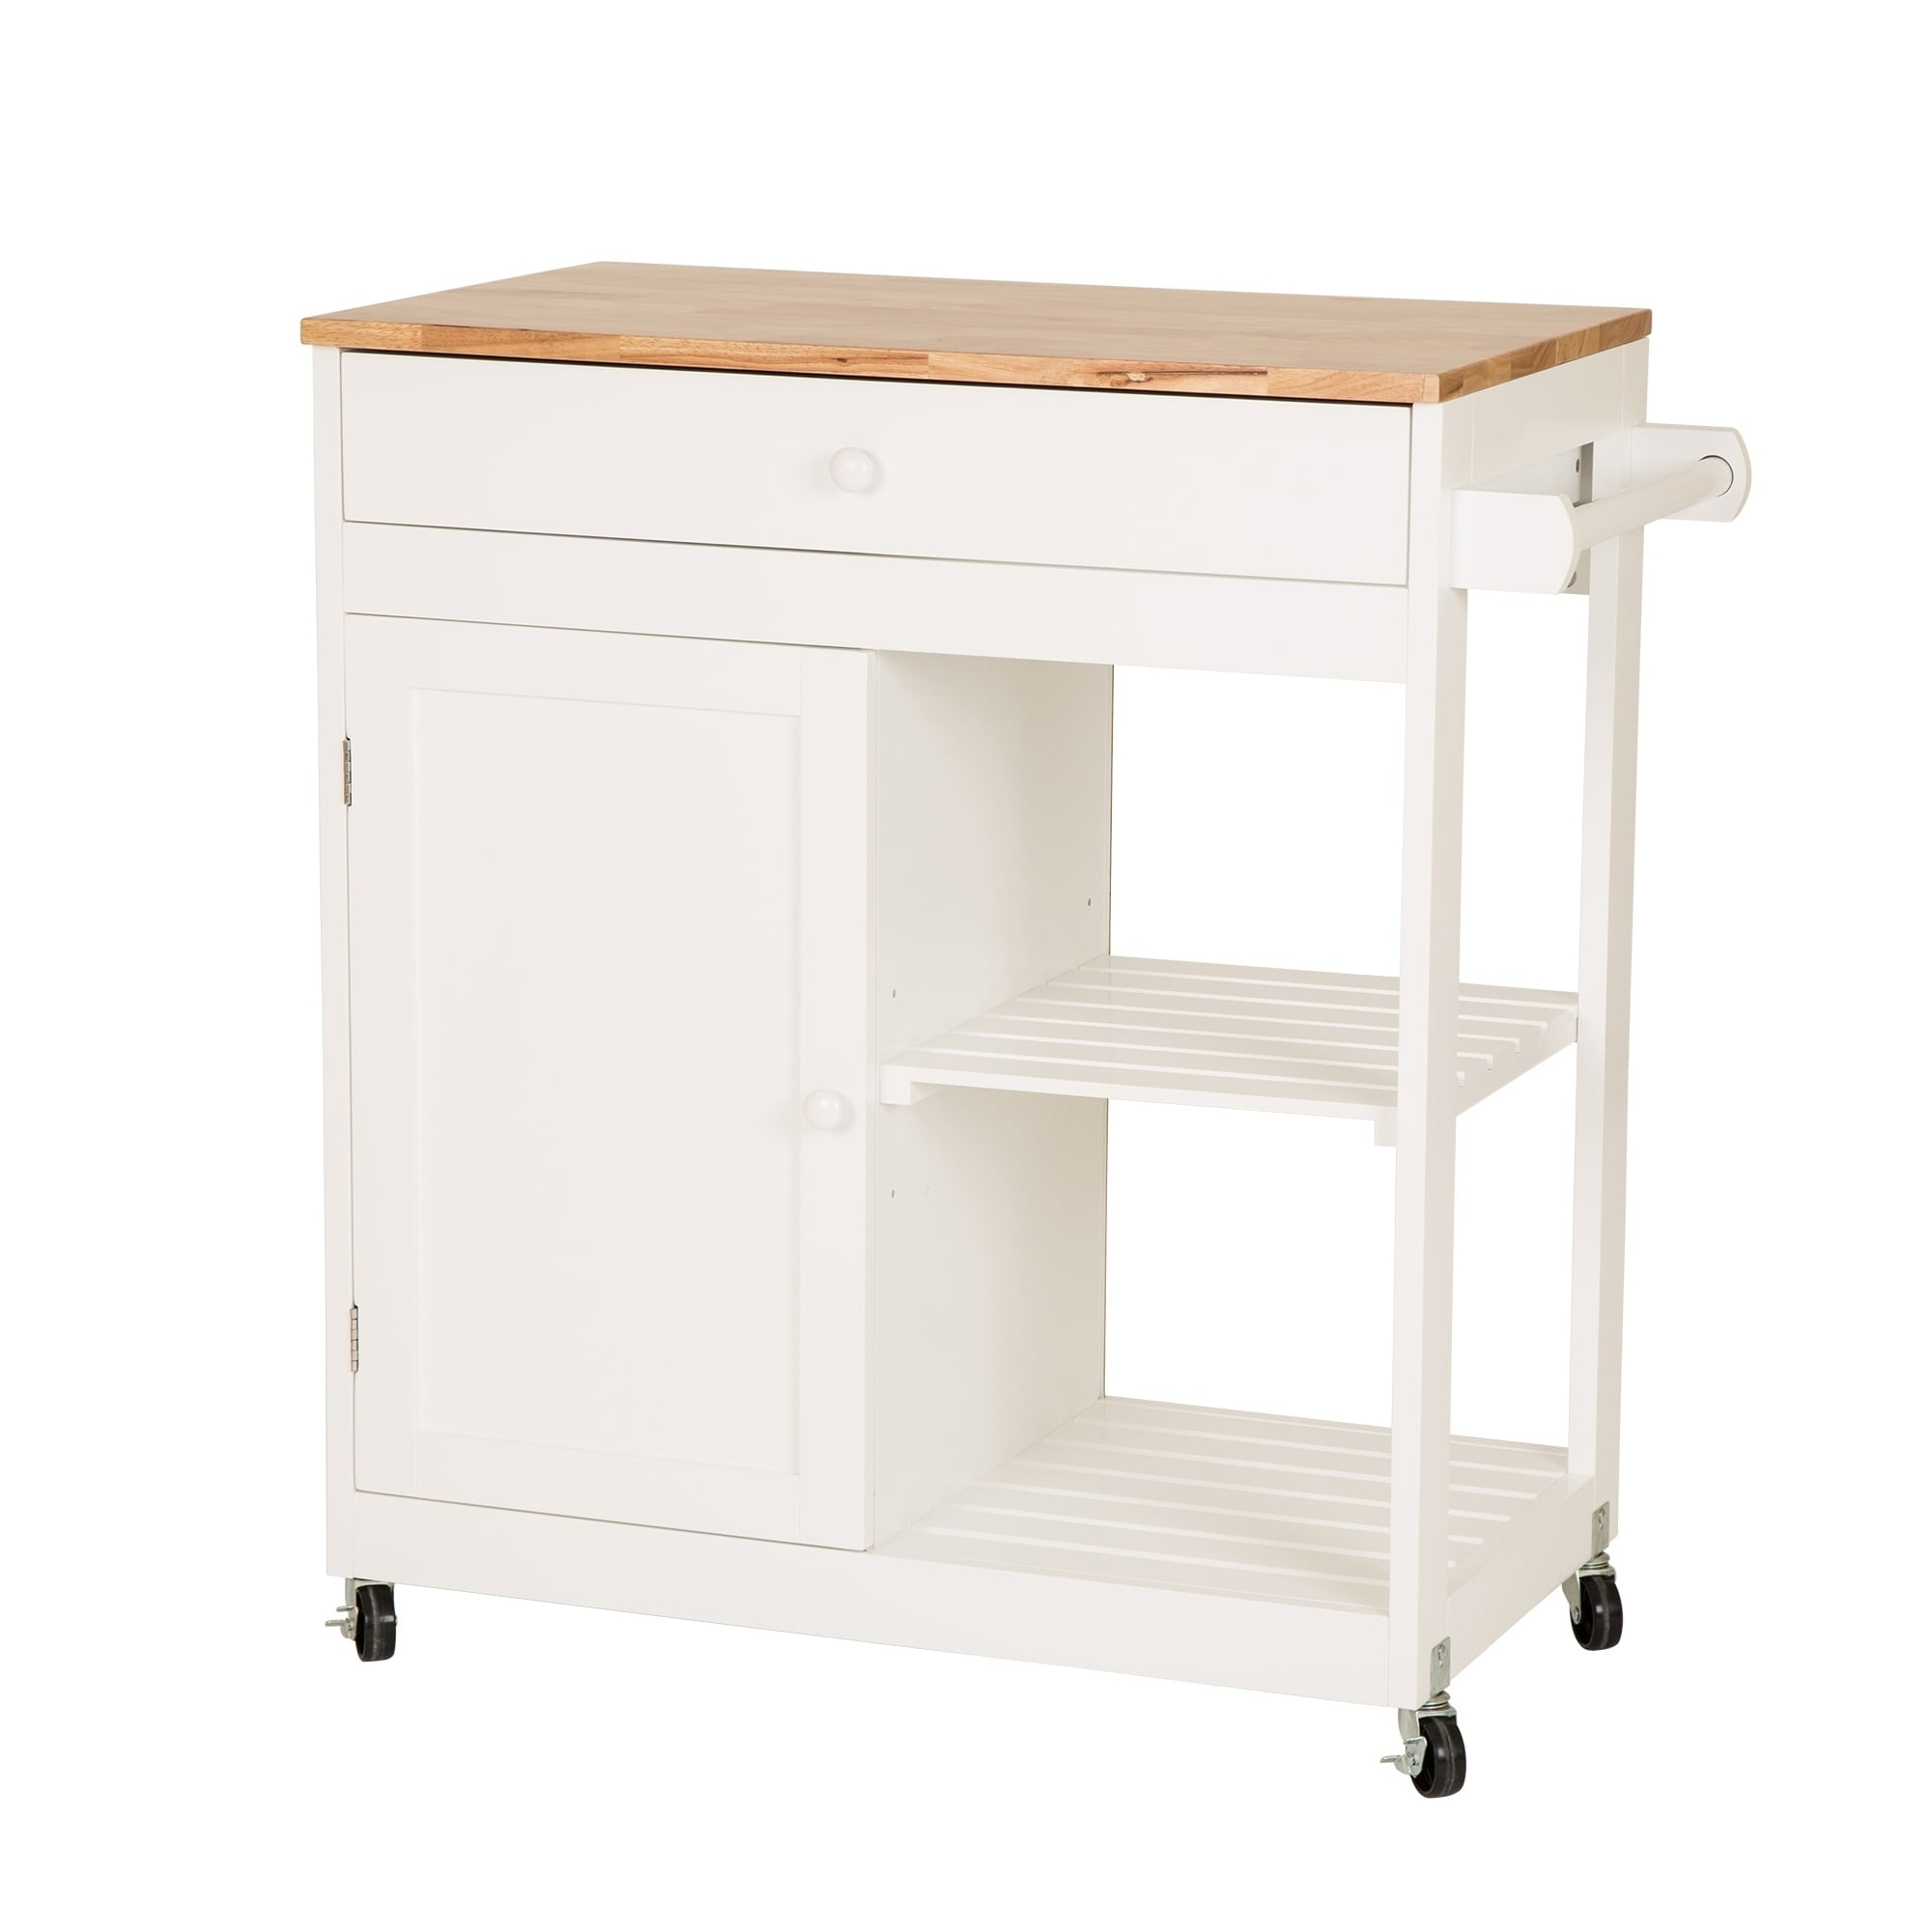 Ordinaire Shop Glitzhome White Kitchen Island Cart With Rubber Wooden Top   On Sale    Free Shipping Today   Overstock   23468088